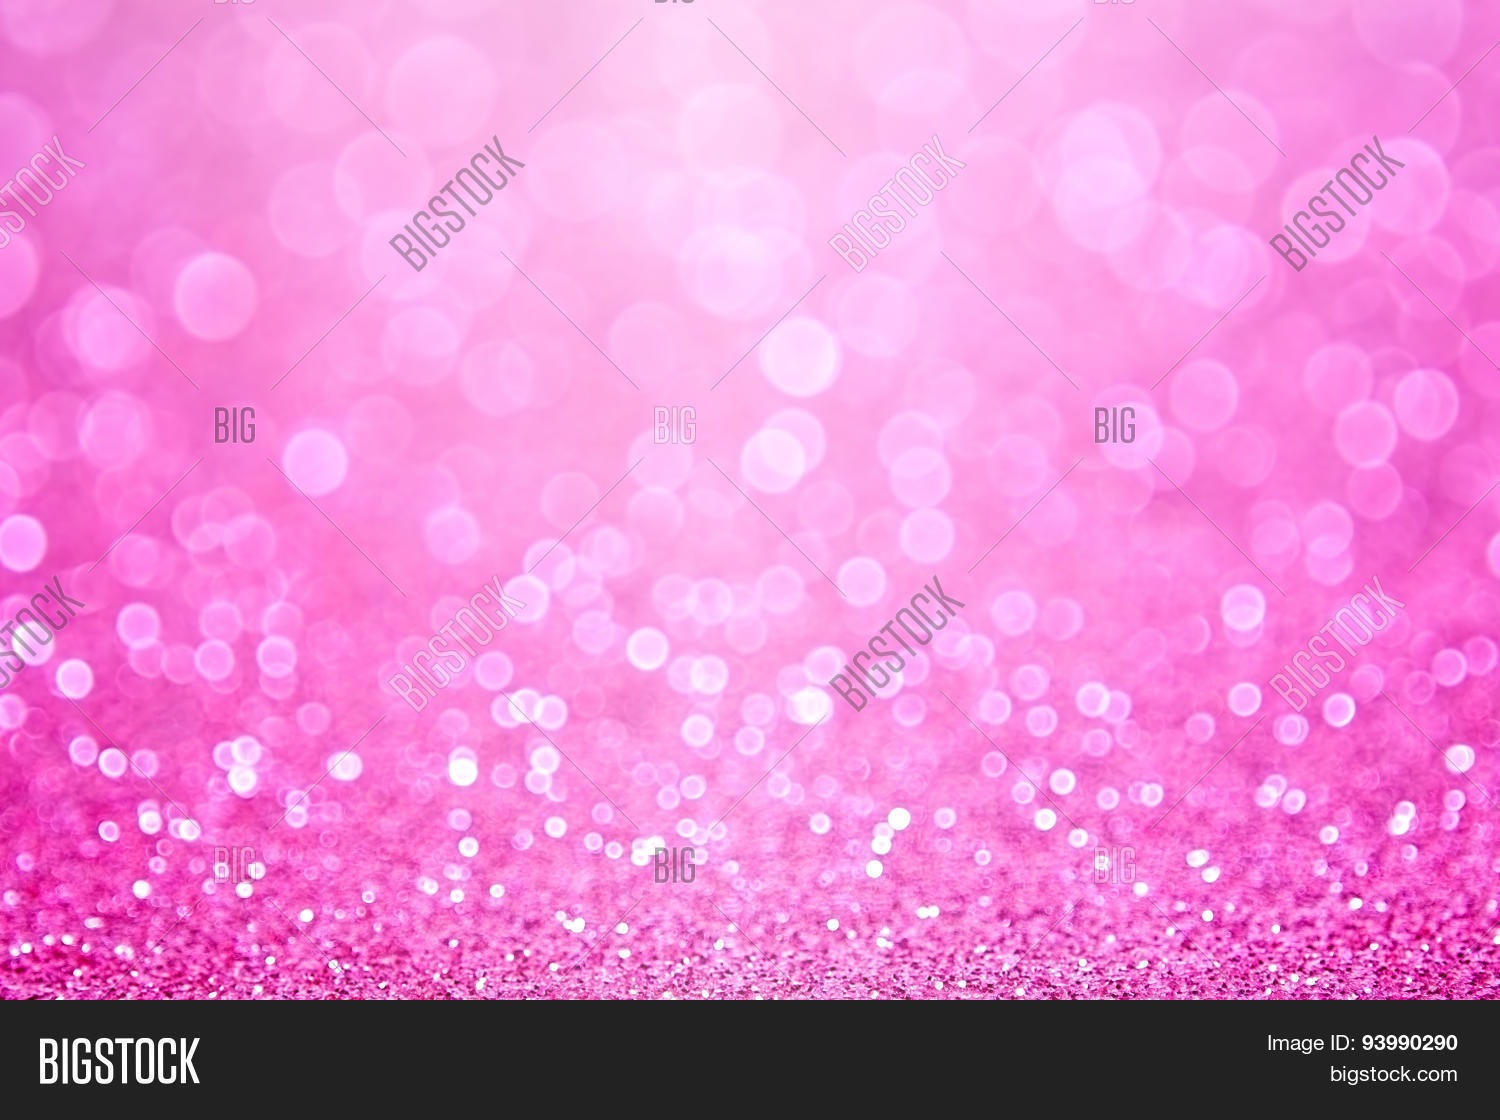 pink baby girl birthday background image amp photo bigstock